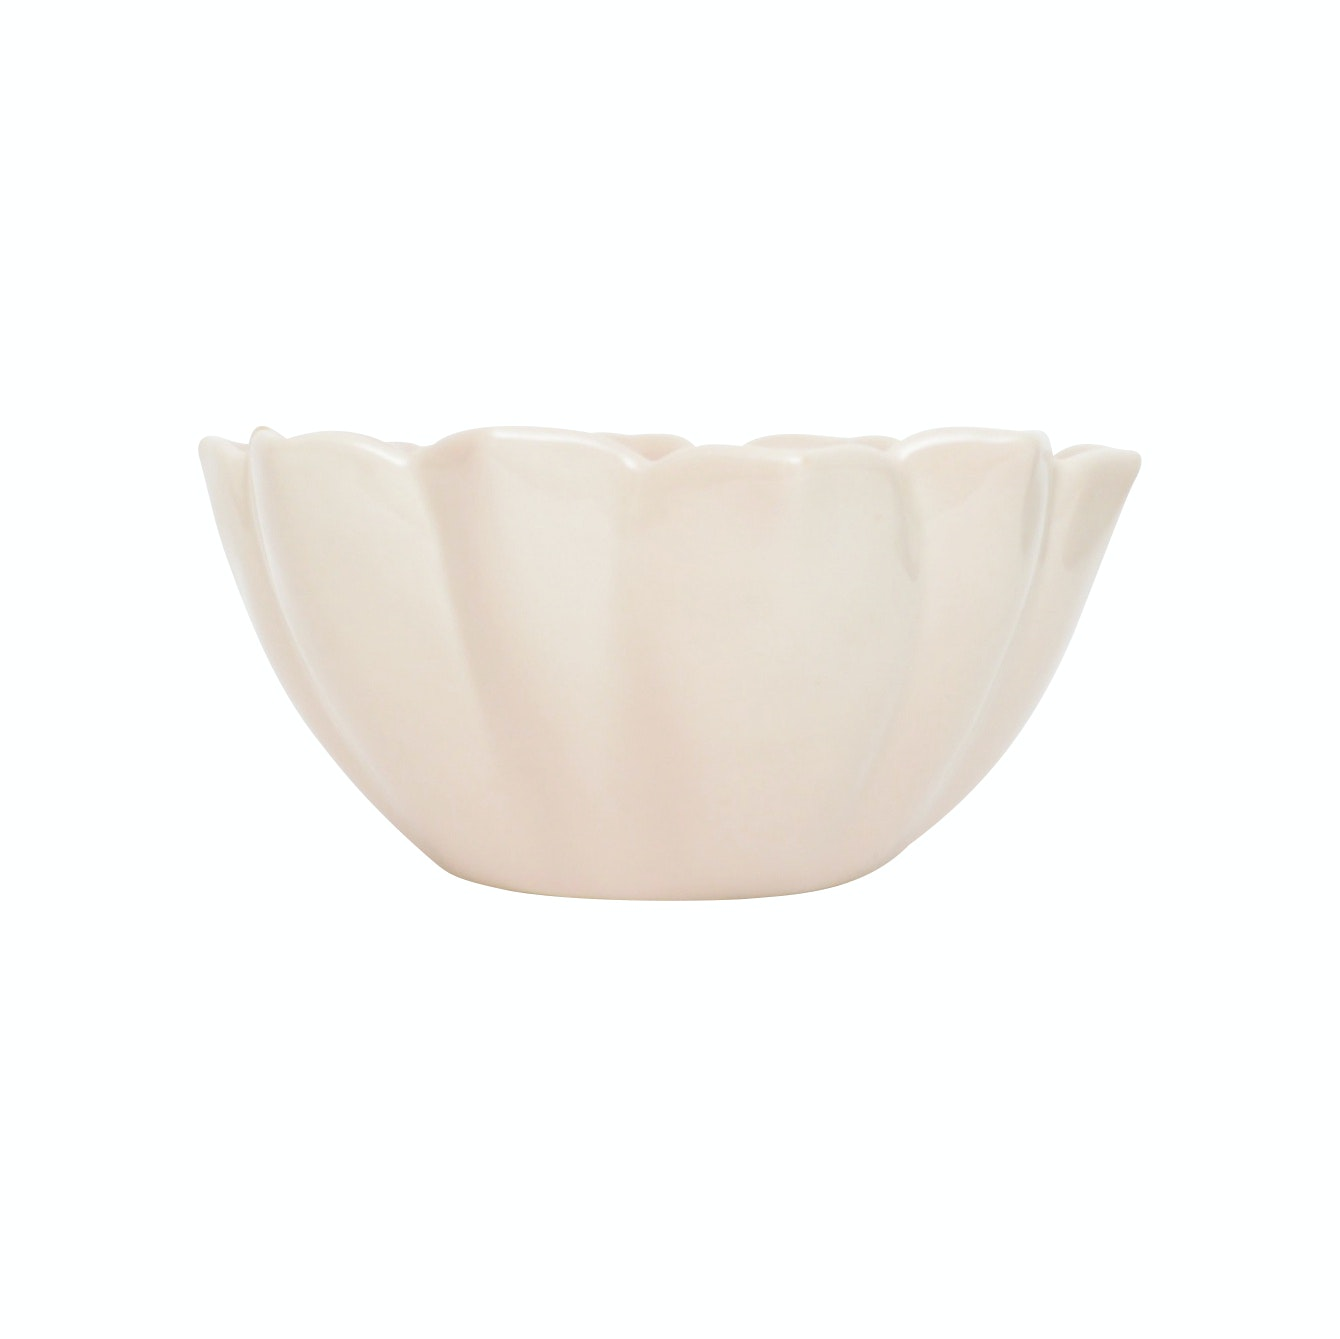 Rookwood Pottery Pale Pink Bowl, 1953